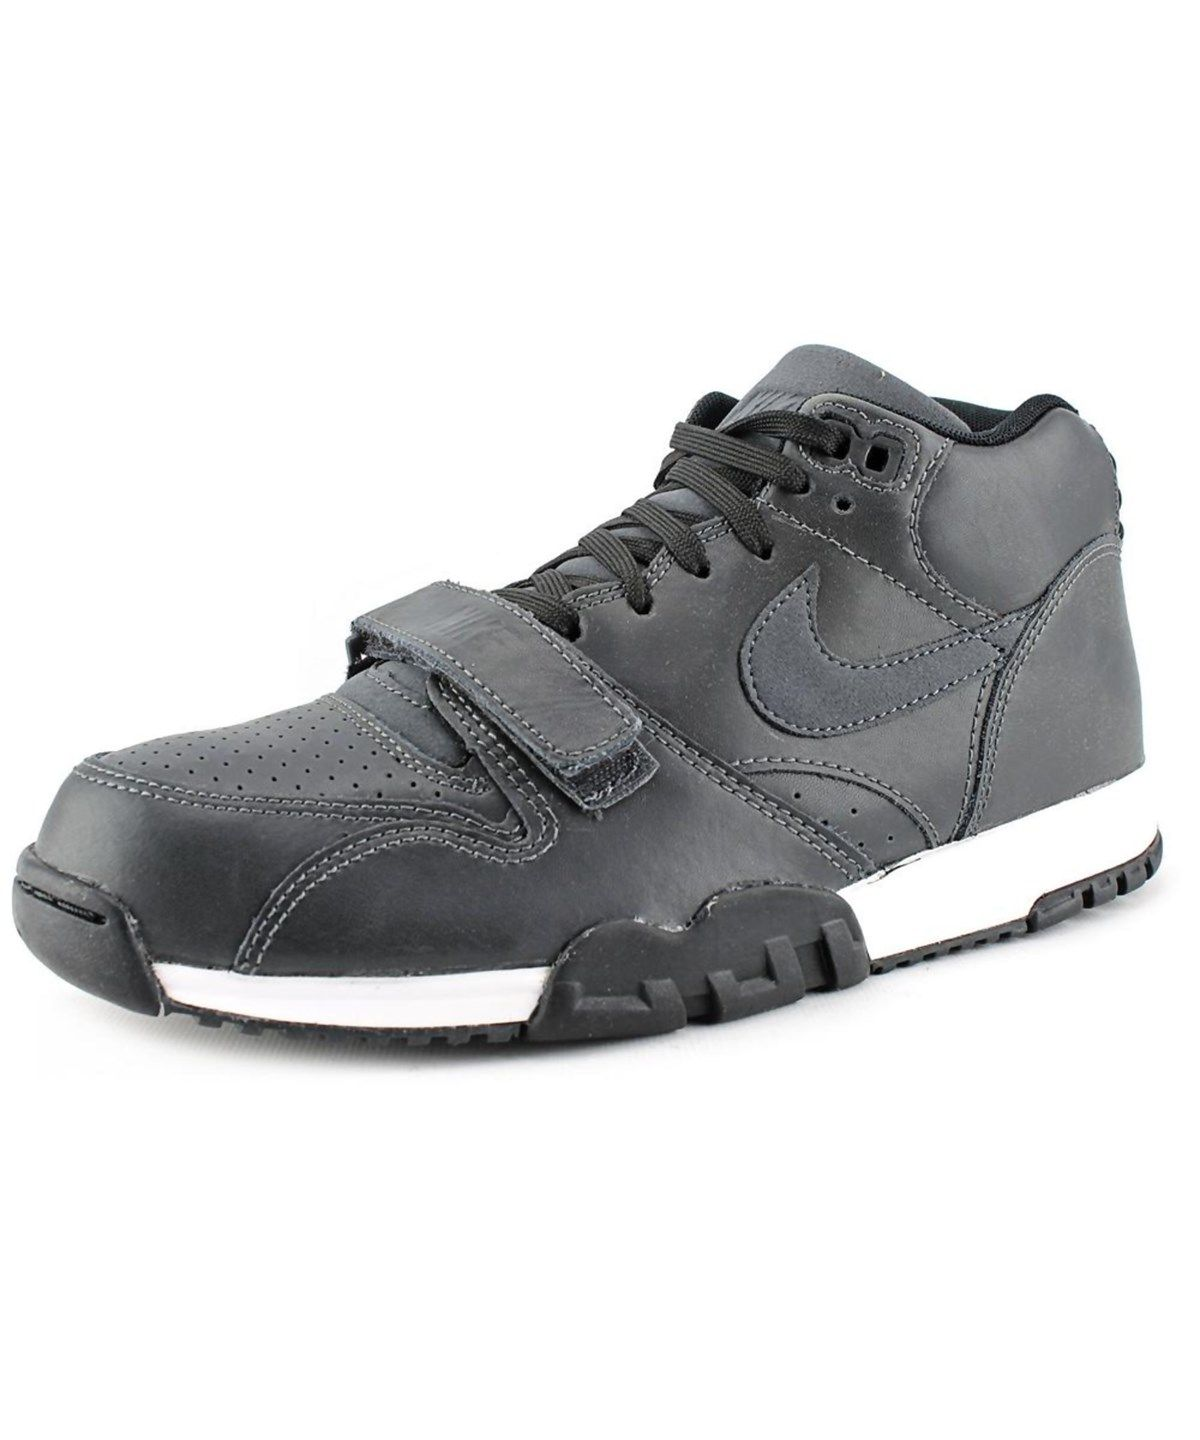 outlet store c2659 8d99f NIKE NIKE AIR TRAINER 1 MID MEN ROUND TOE LEATHER GRAY BASKETBALL SHOE.  nike shoes sneakers